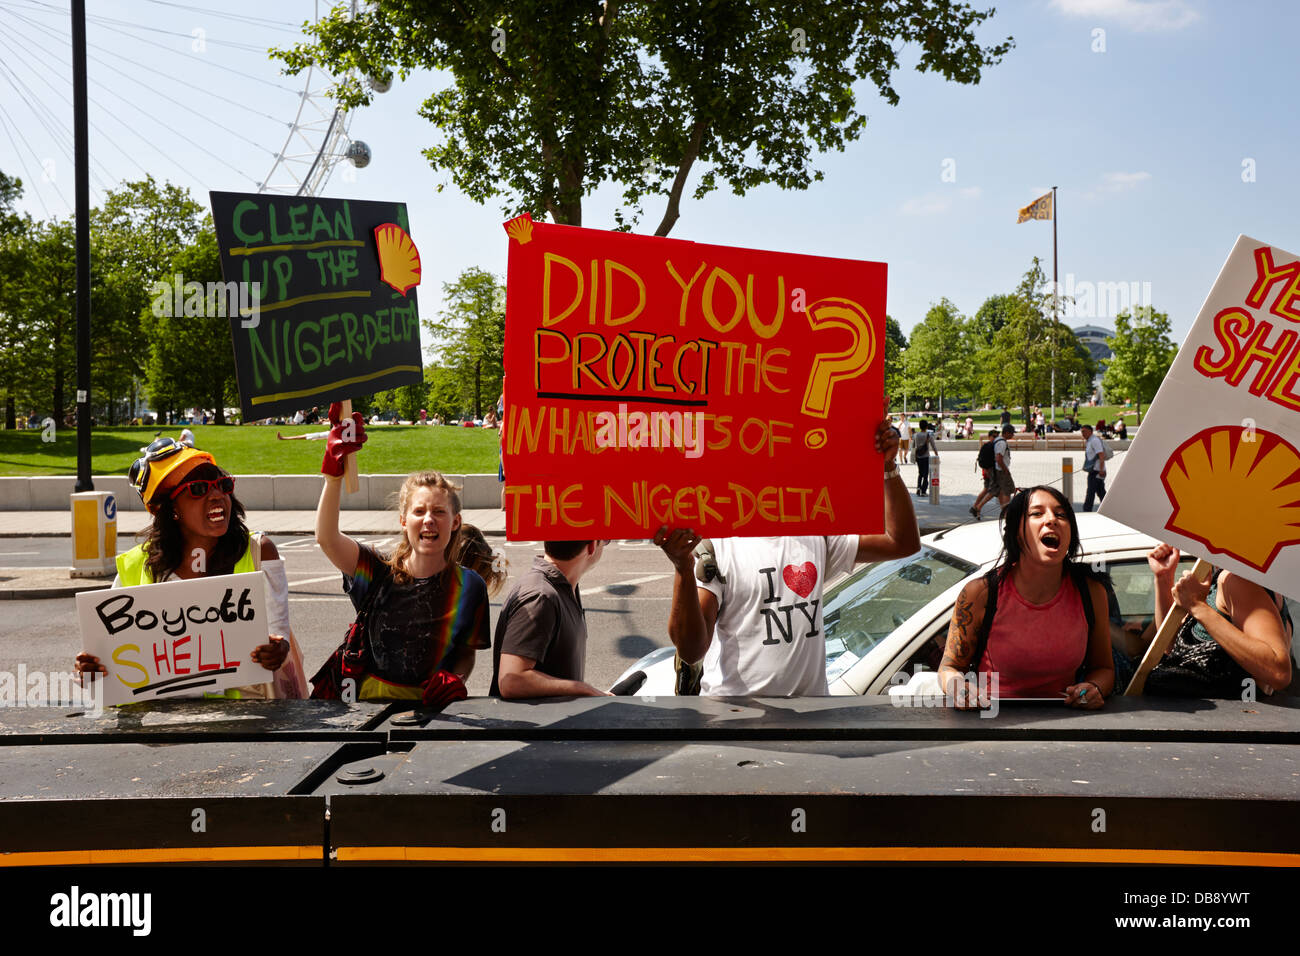 niger delta oil protestors protesting against shell at shell centre southbank London England UK - Stock Image